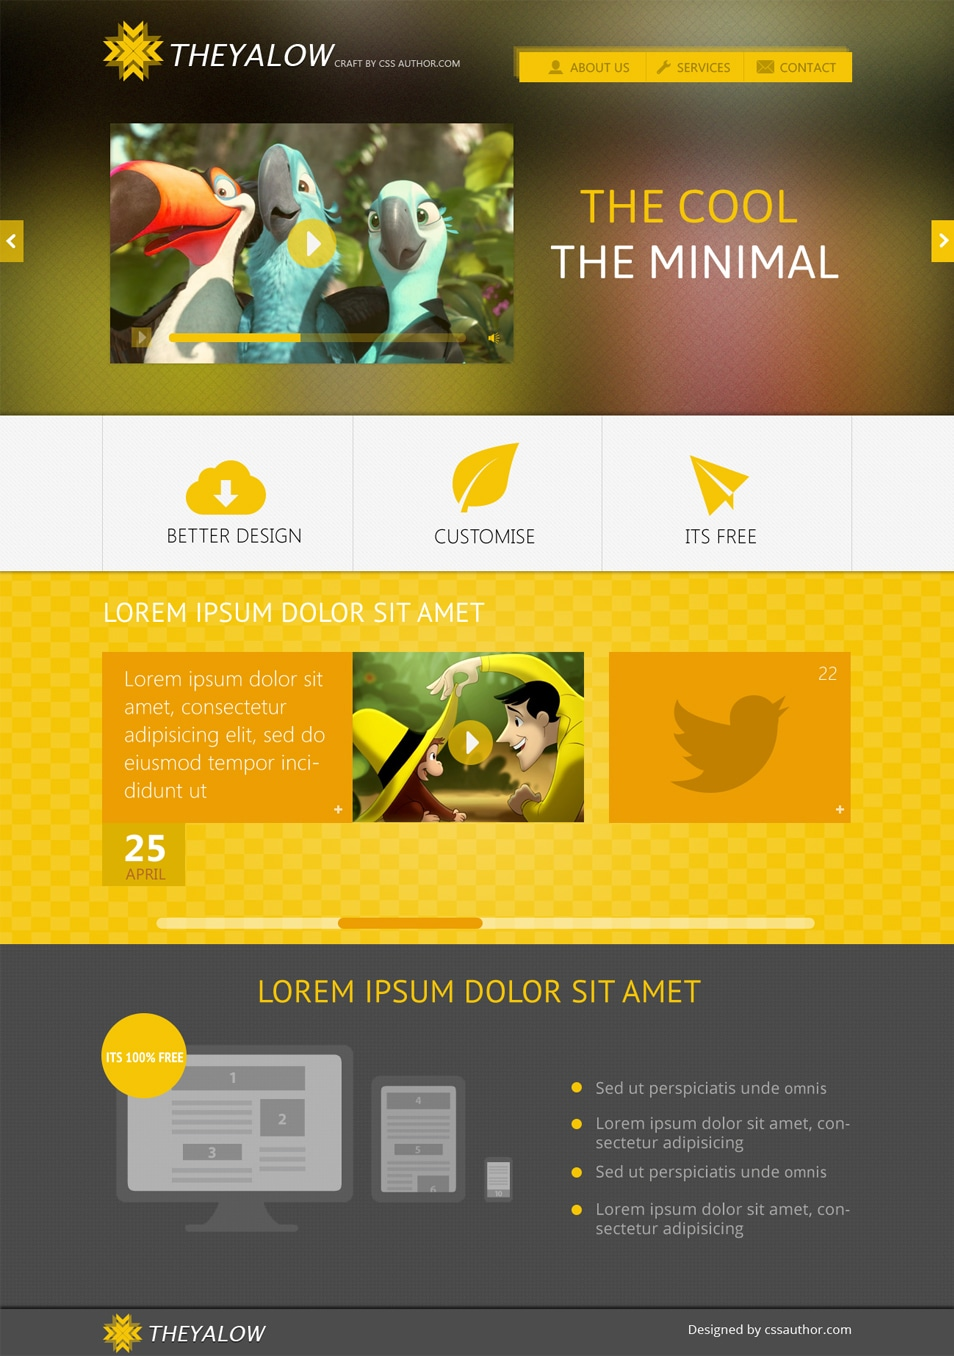 THEYALOW - A Responsive Web Design Template PSD for Free Download ...